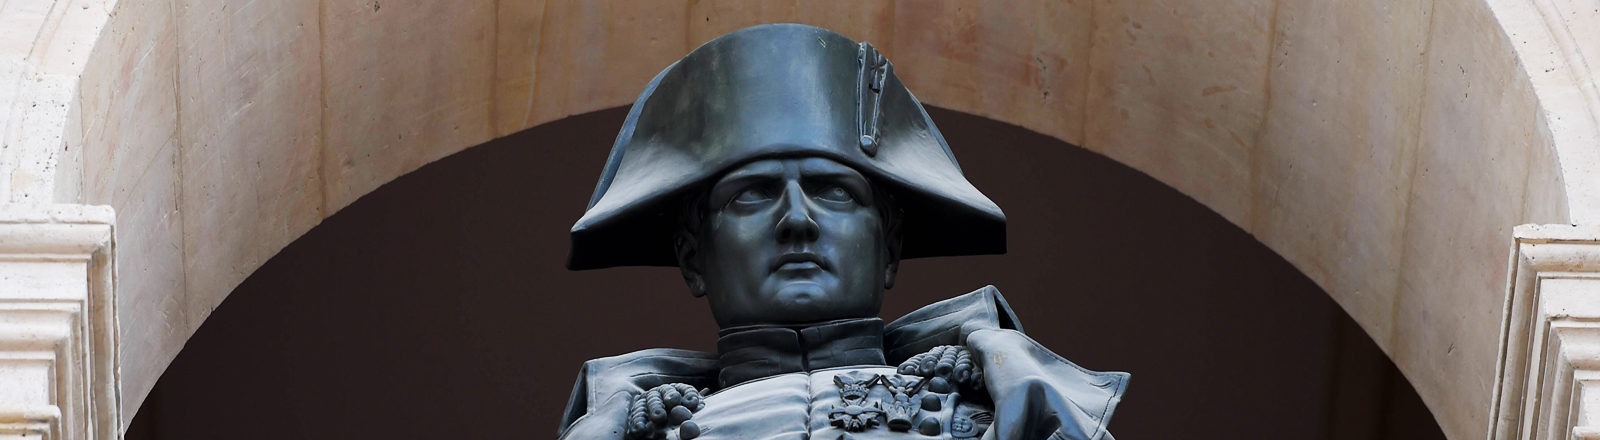 Napoleon-Statue in Paris